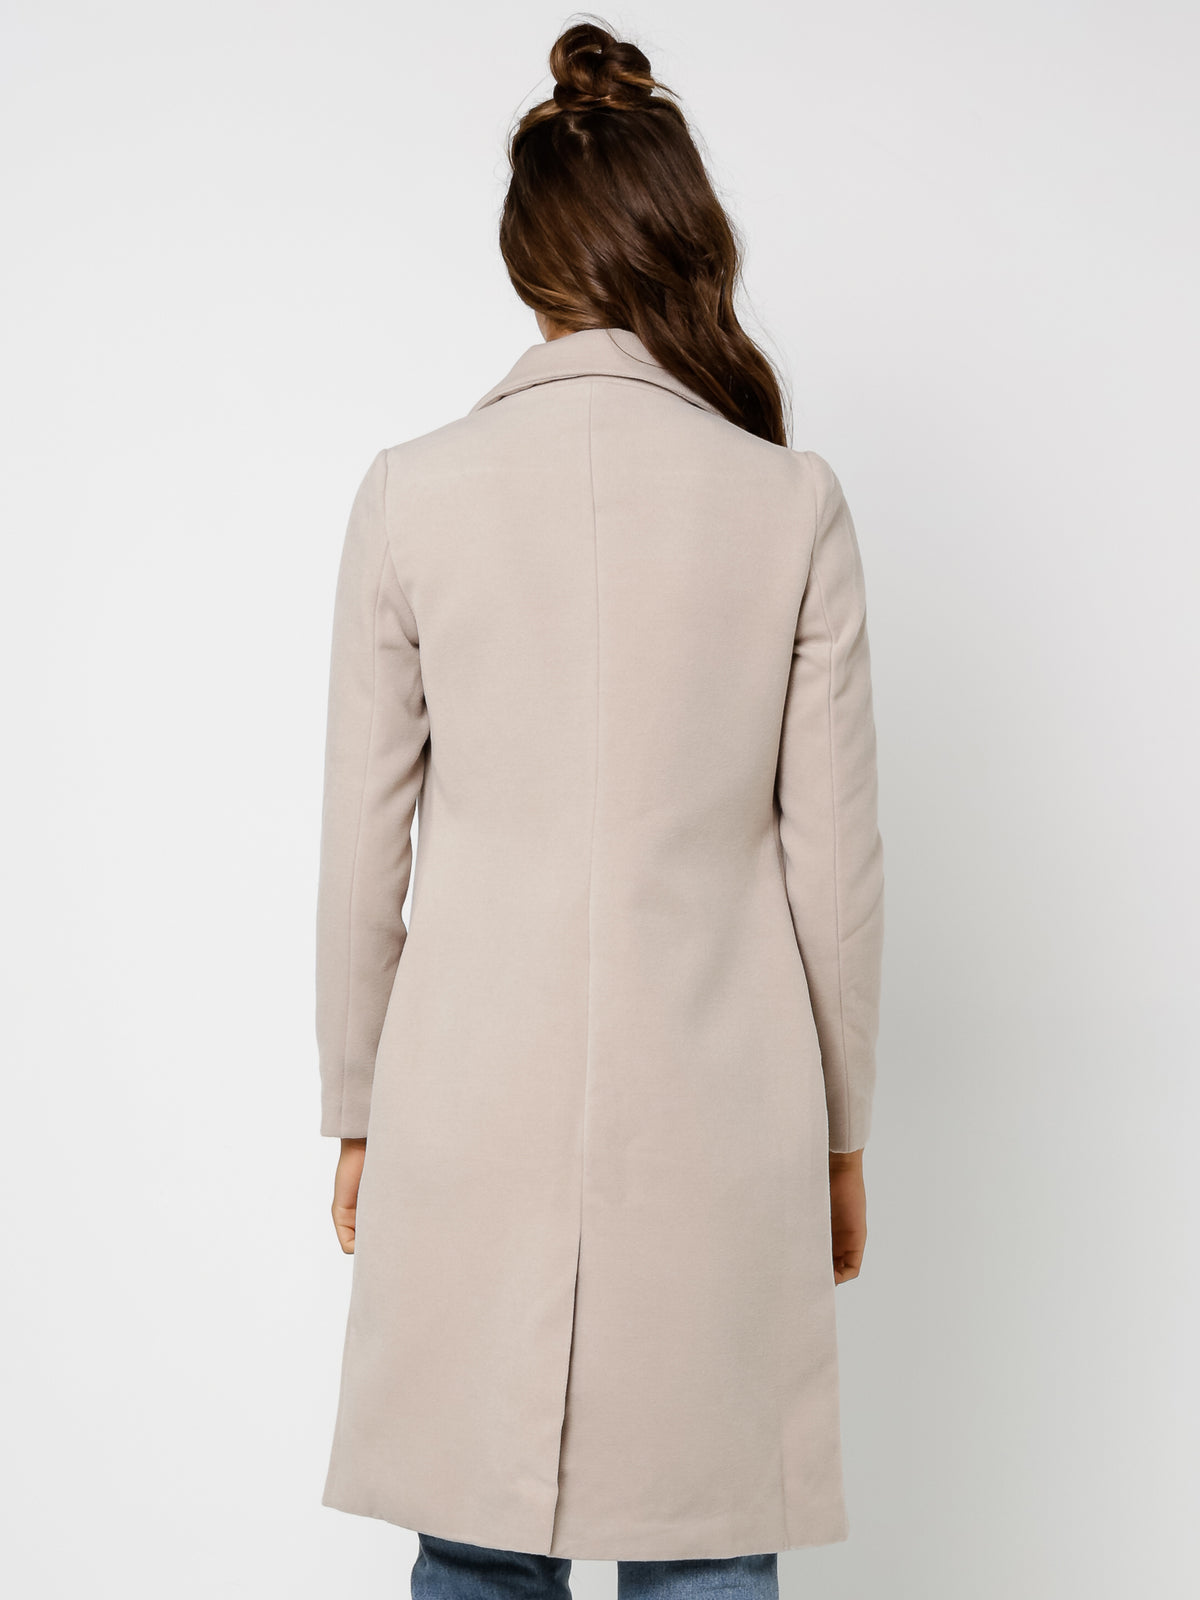 Carol Long Coat in Sand